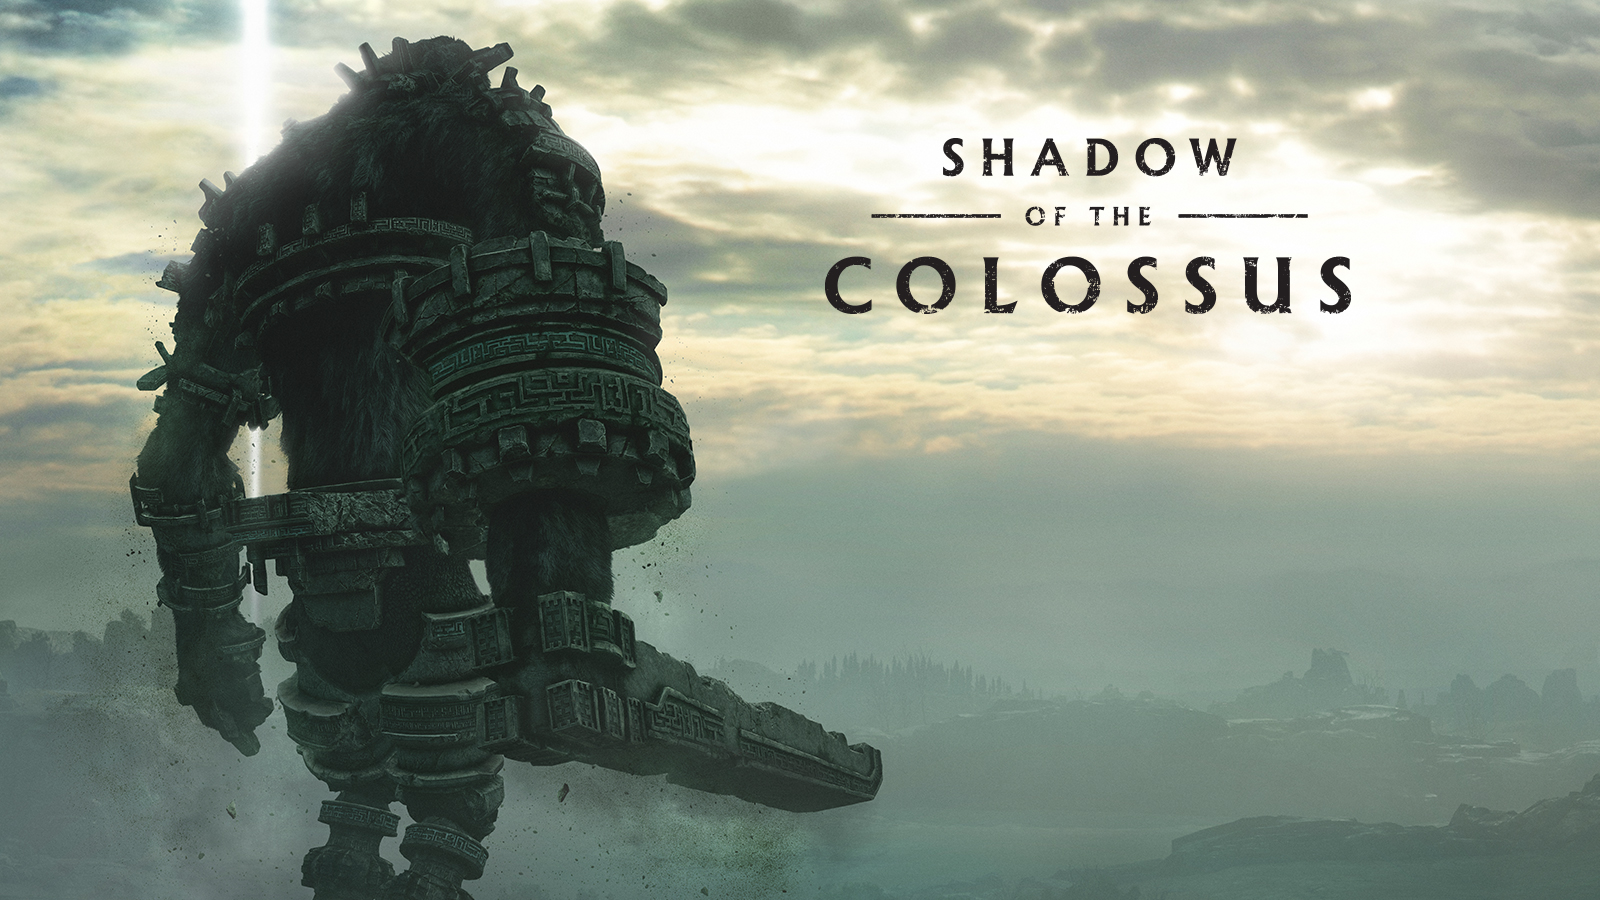 shadow-of-the-colossus-listing-thumb-01-ps4-us-17oct17.png